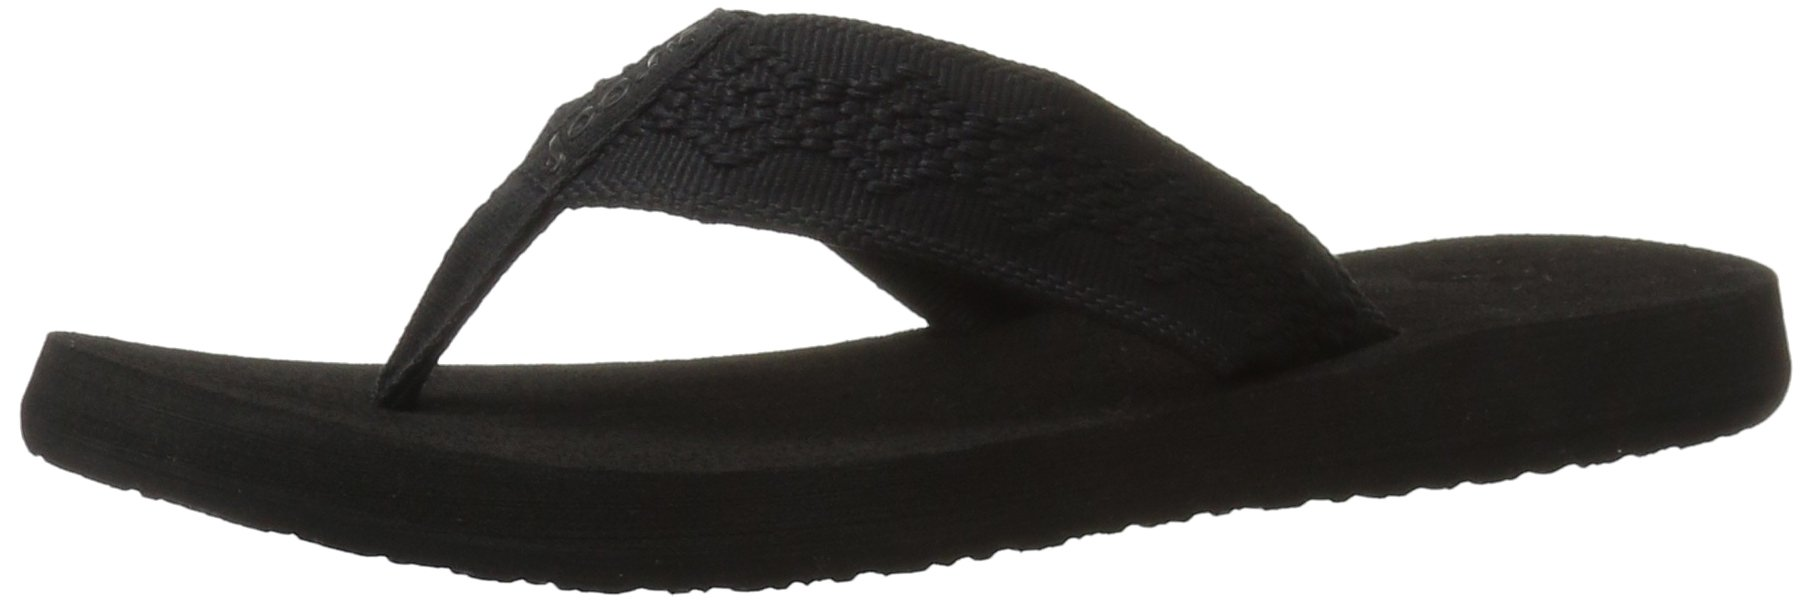 Reef Women's Sandy Sandal,Black/Black,7 M